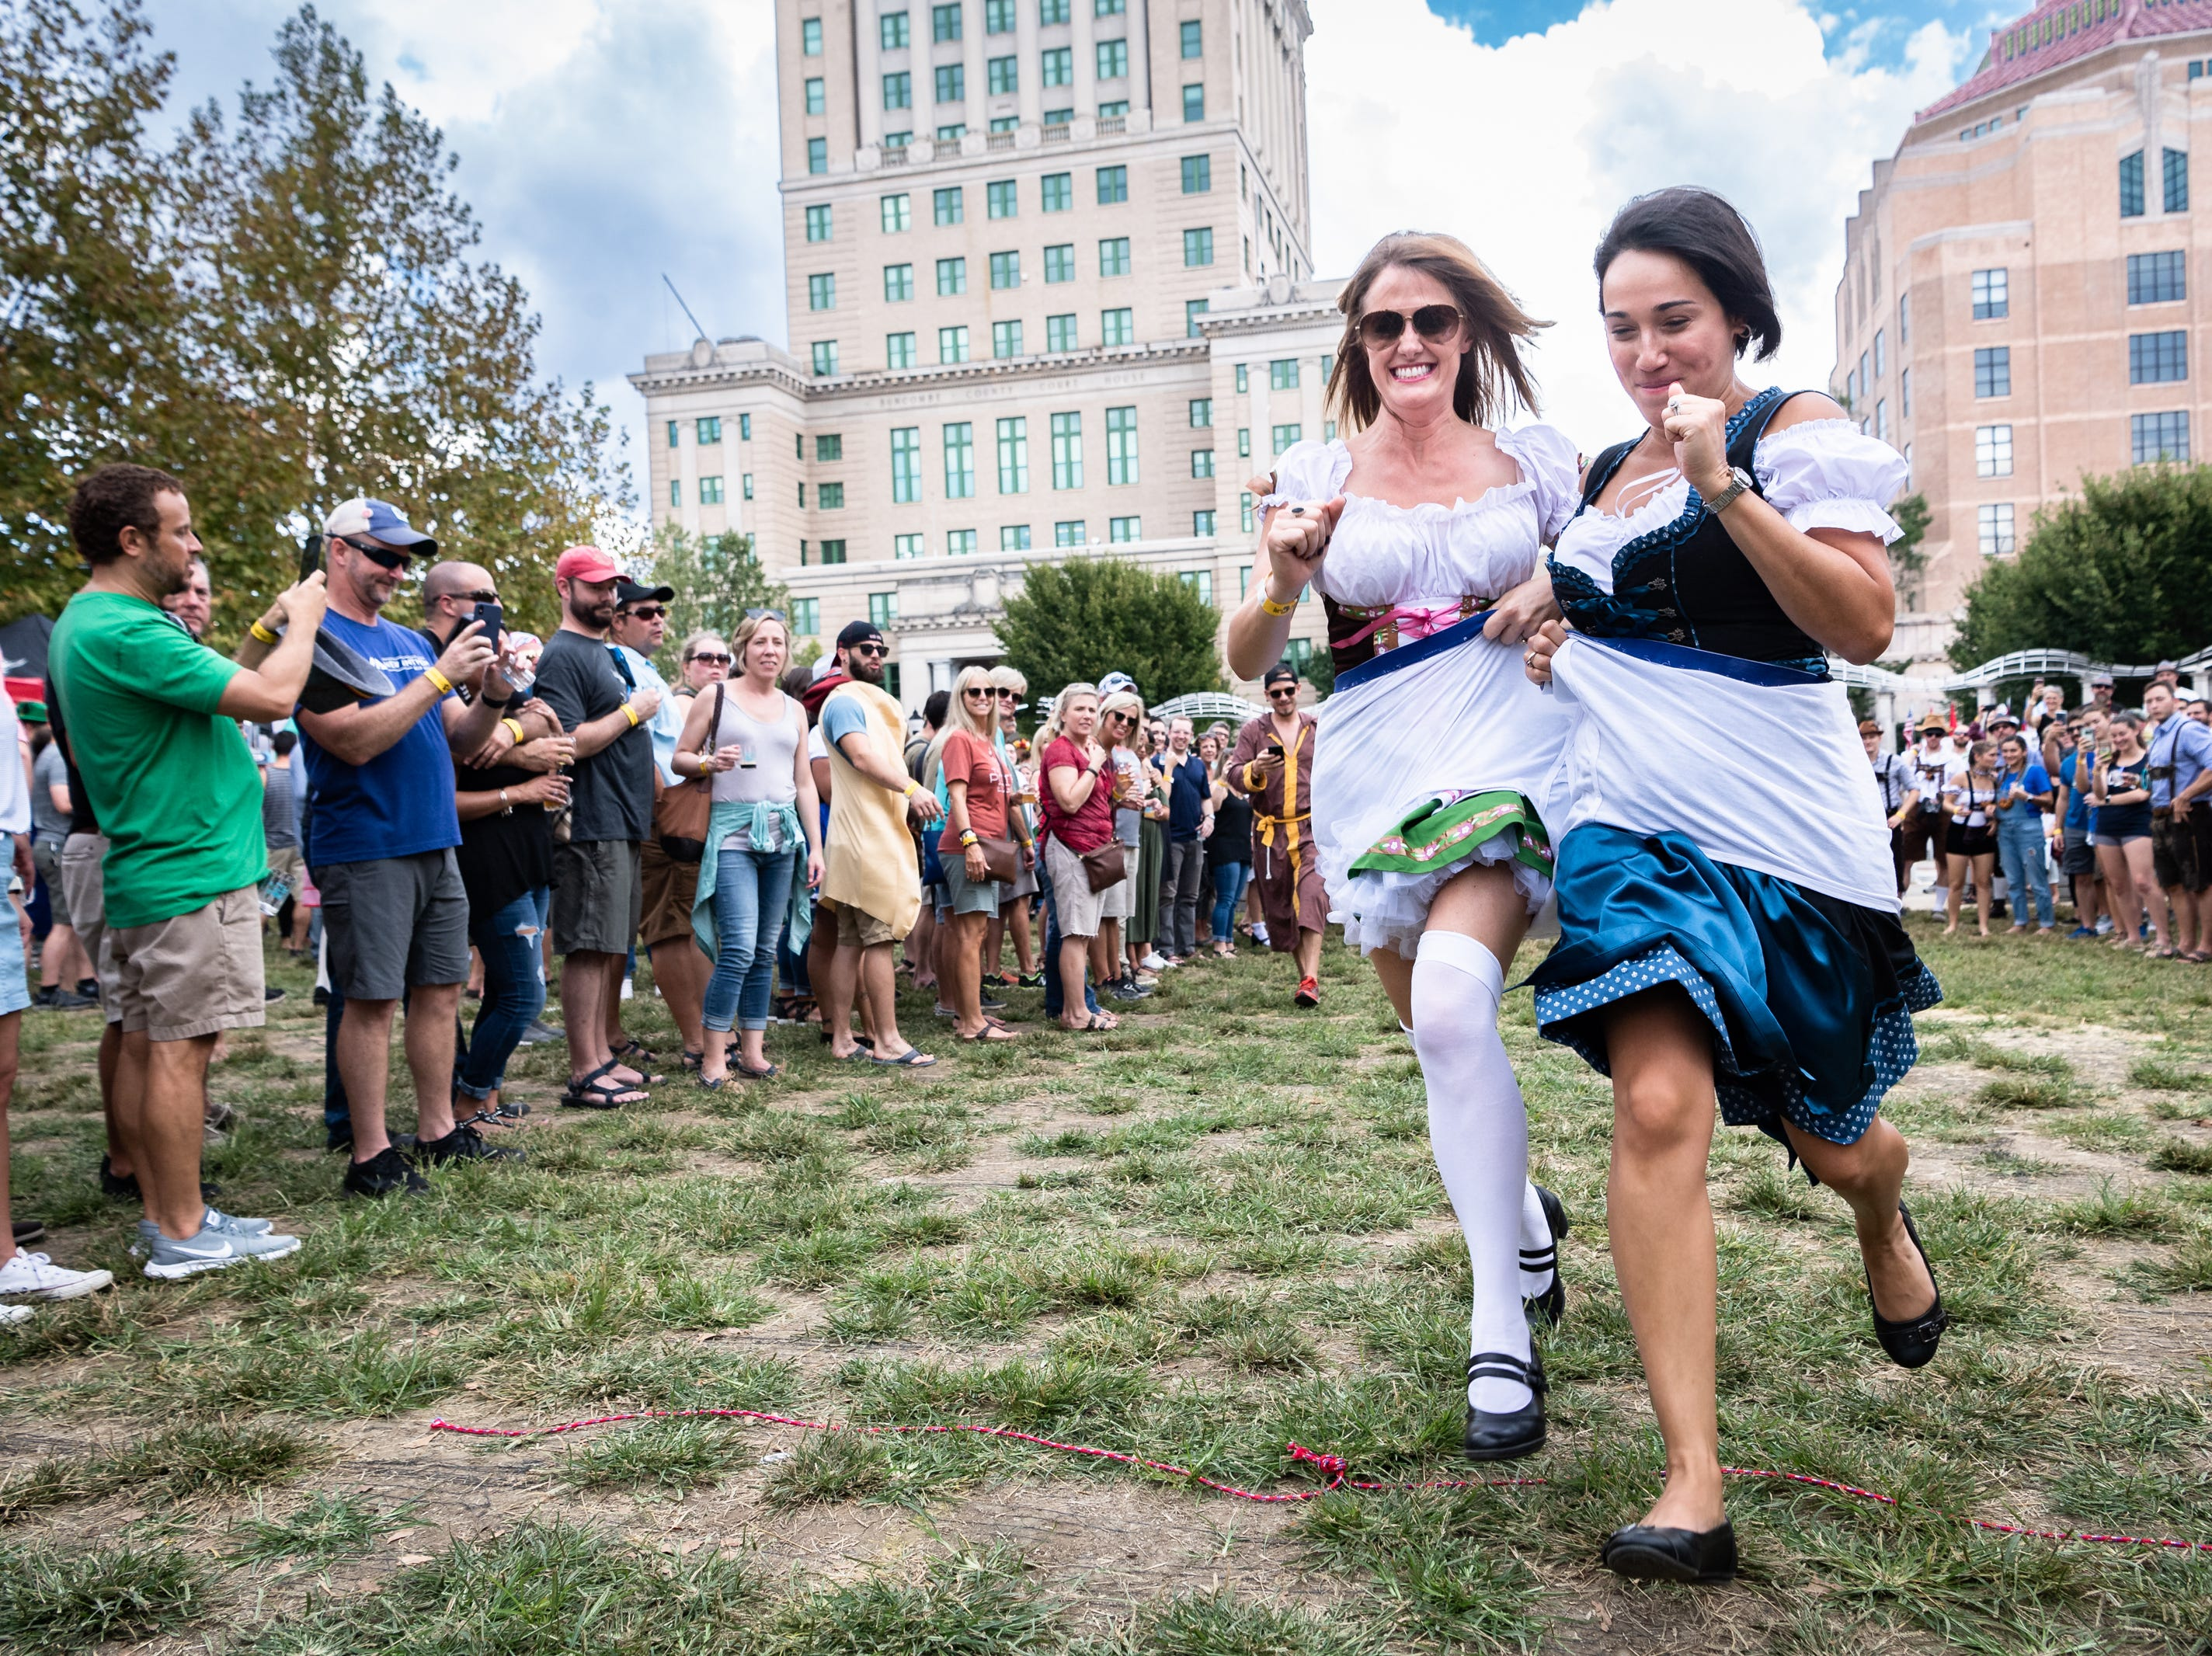 Tricia White and her teammate Marian Keen run across the finish line in a giant pair of underwear during the whitey tighty race at the 10th annual Asheville Oktoberfest at Pack Square Park Saturday, Oct. 6, 2018.